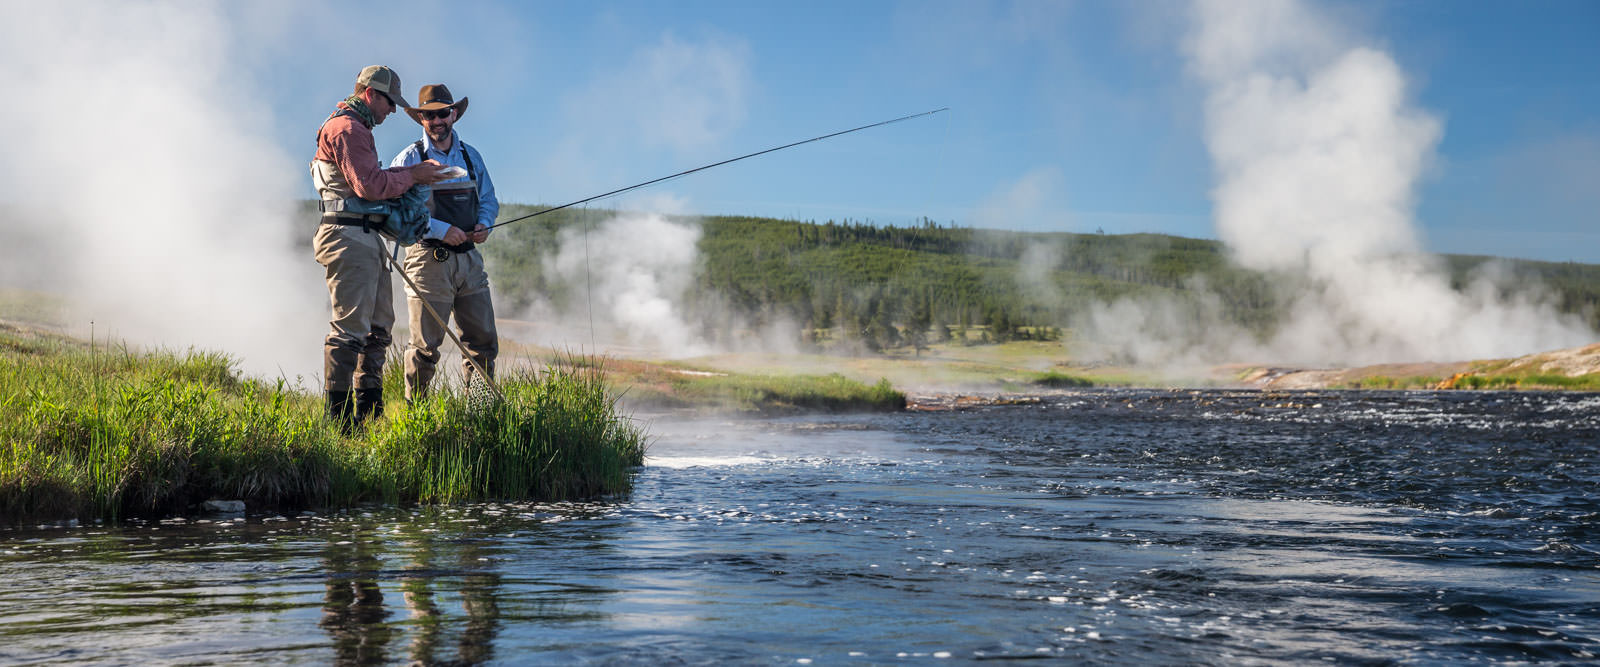 Montana Fly Fishing Information On Rivers Guides And Lodges